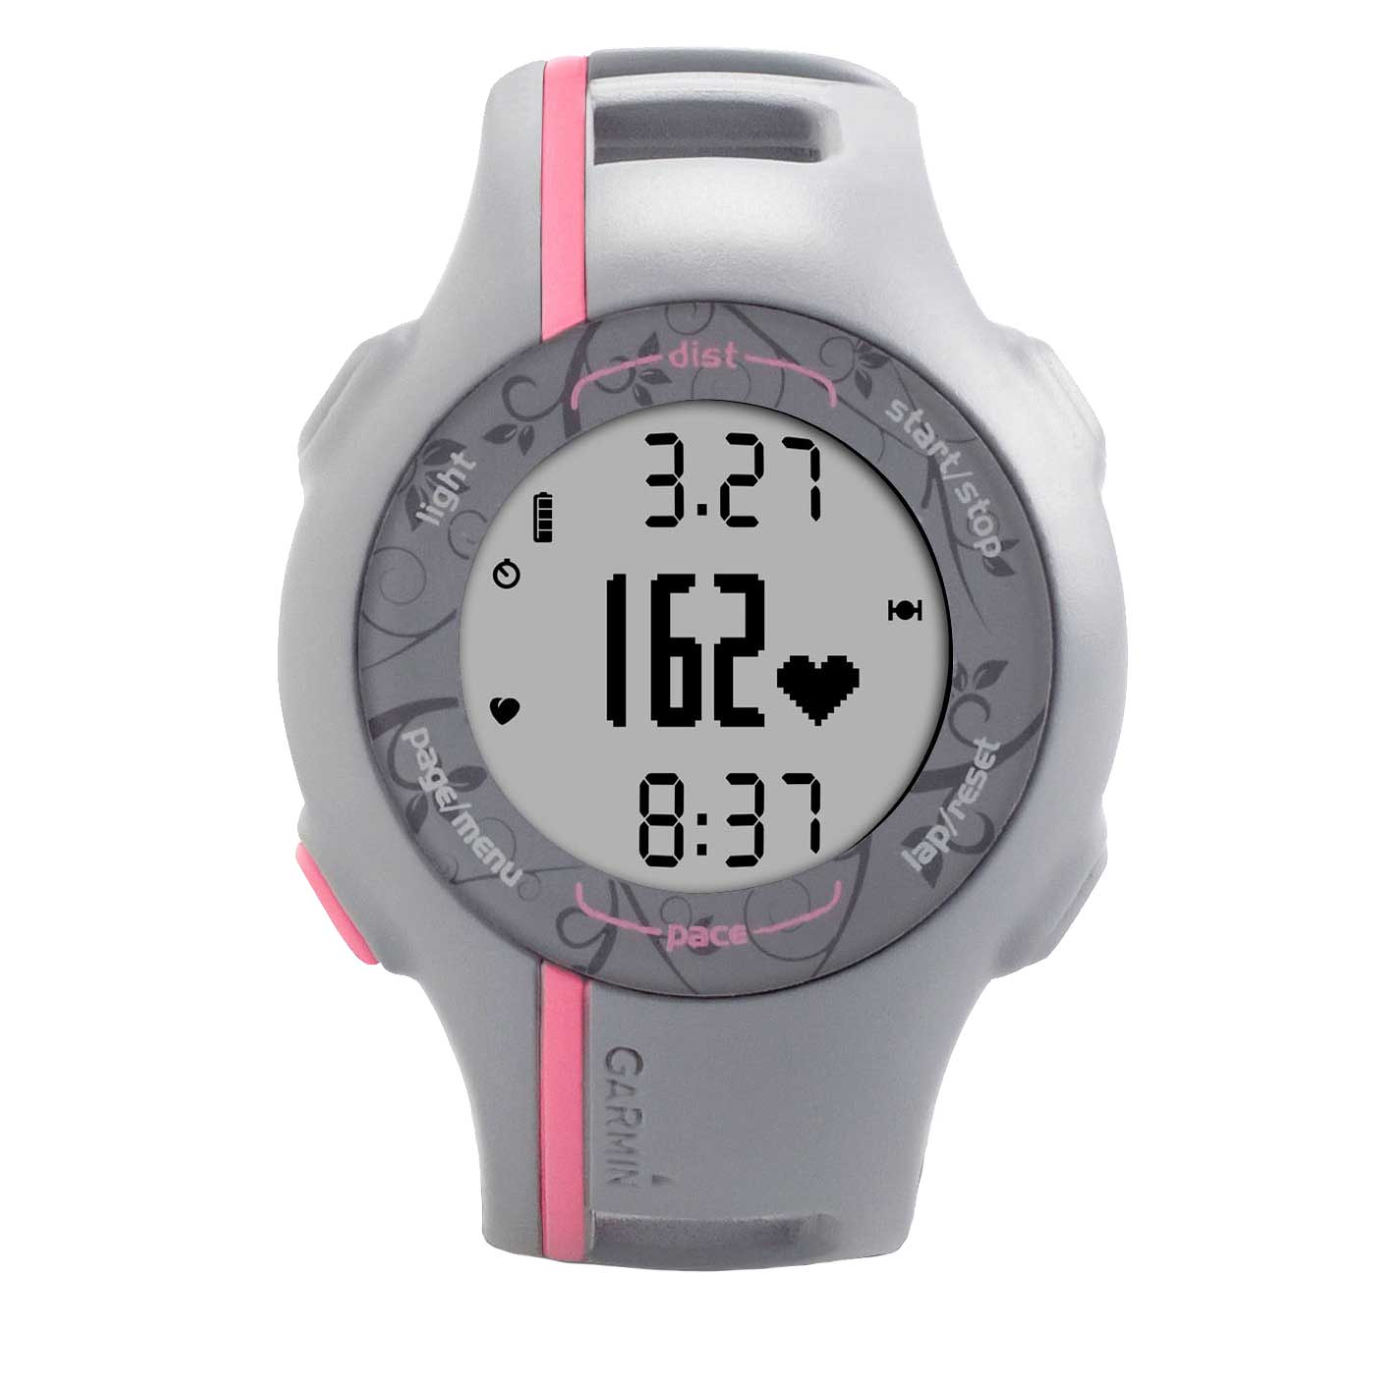 garmin forerunner 110 gps sportuhr f r damen mit pulsmesser gps laufcomputer wiggle. Black Bedroom Furniture Sets. Home Design Ideas